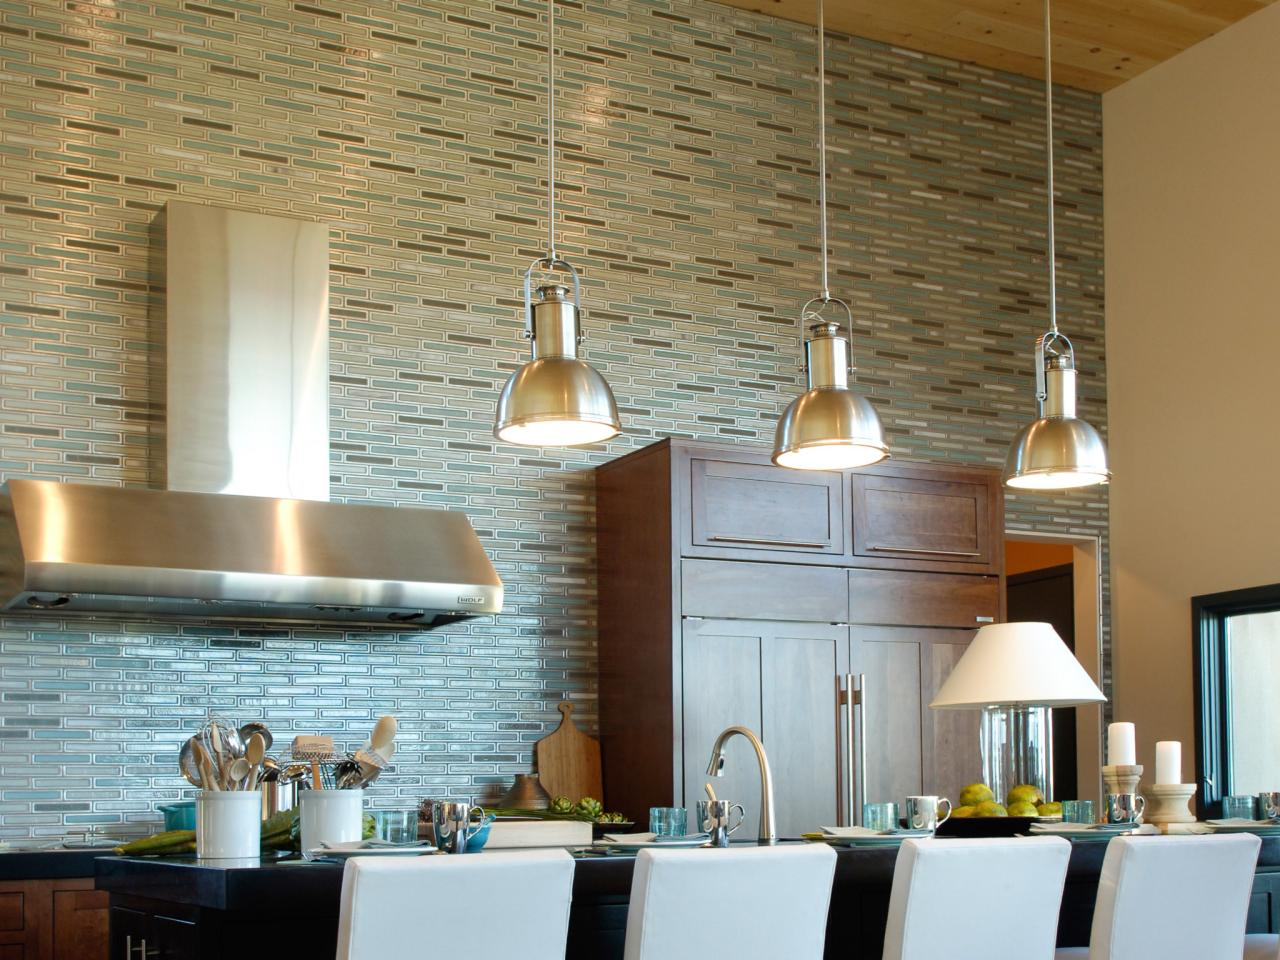 tile backsplash ideas: pictures & tips from hgtv | hgtv